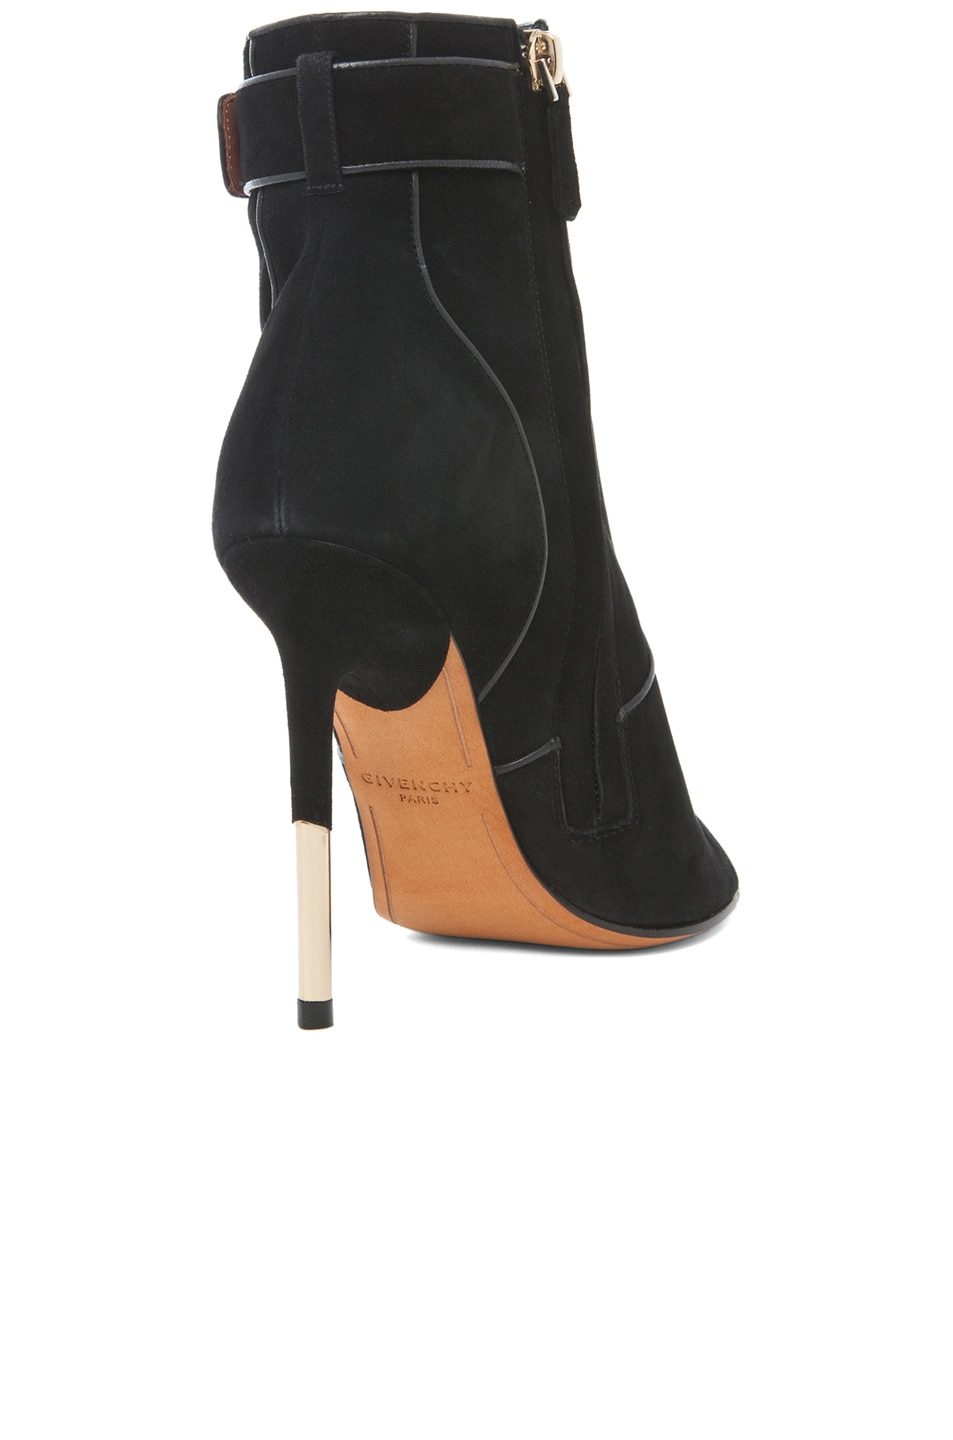 Image 3 of GIVENCHY Dunke Suede Nappa Shark Lock Bootie in Black